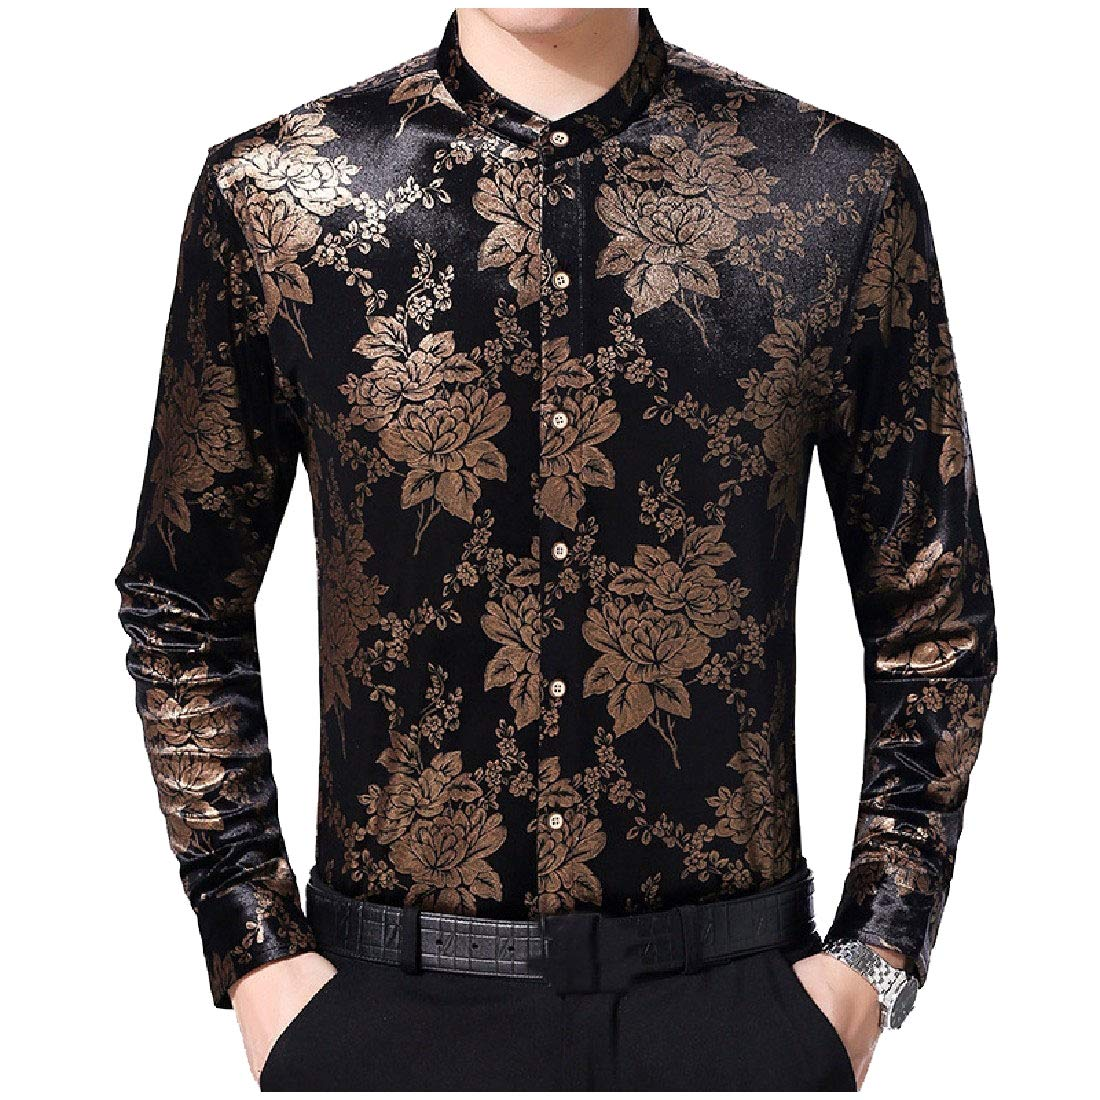 YUNY Mens Leisure Long-Sleeve Winter Floral Printed Stand Collar Work Shirt AS2 M